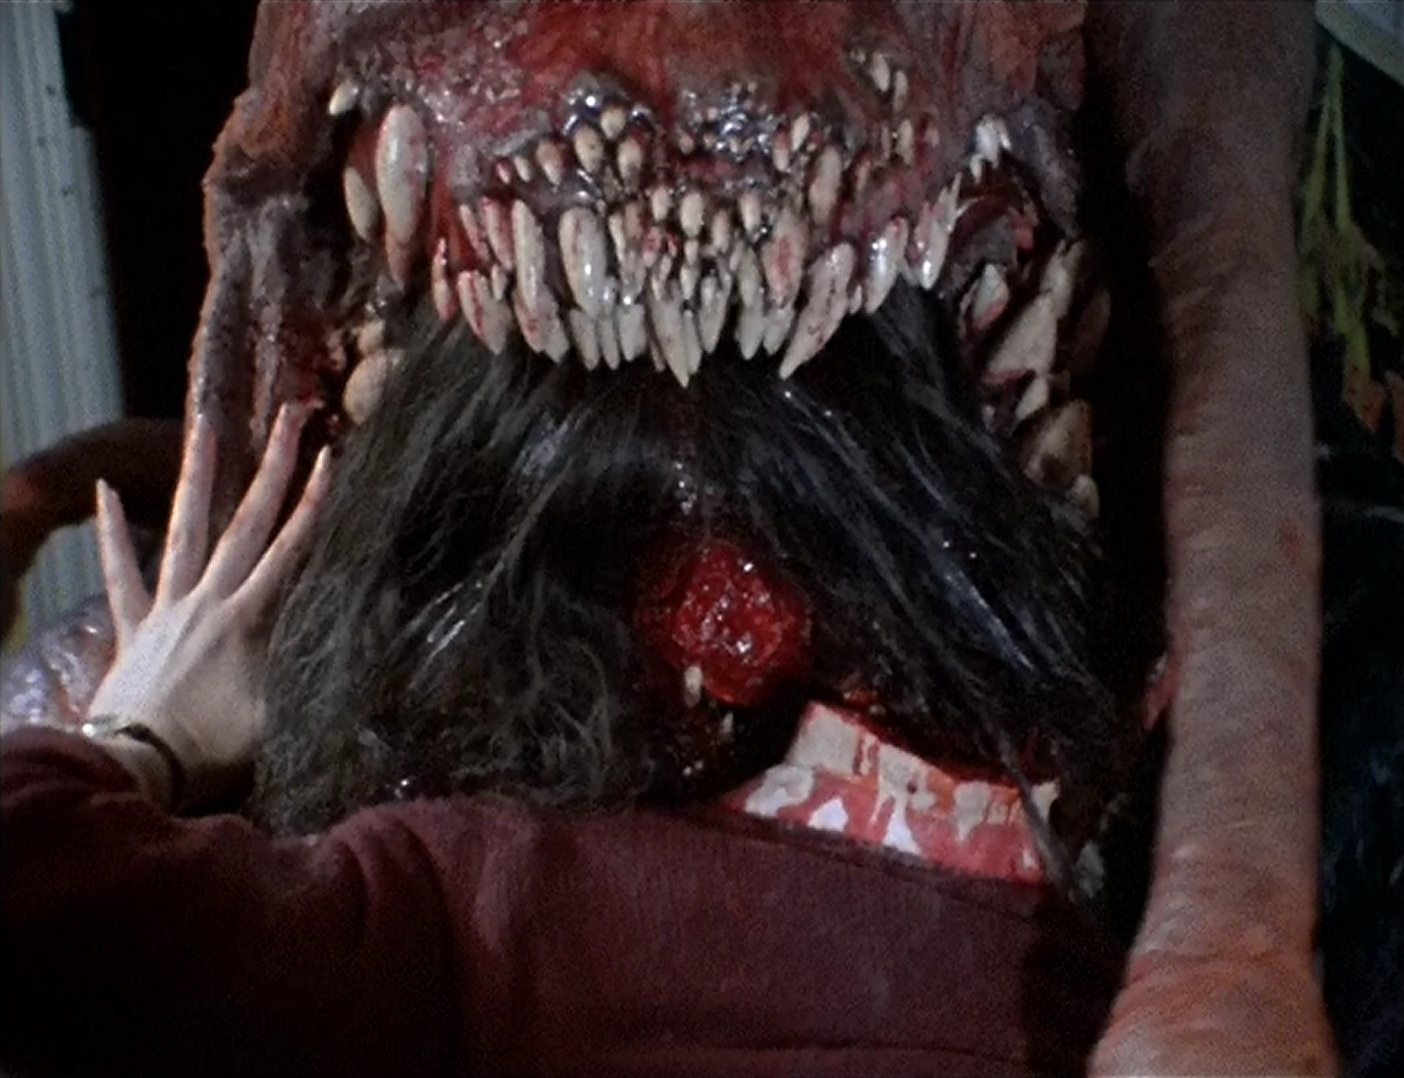 http://sinsofcinema.com/Images/Deadly%20Spawn/Deadly%20Spawn%20Synapse.jpg